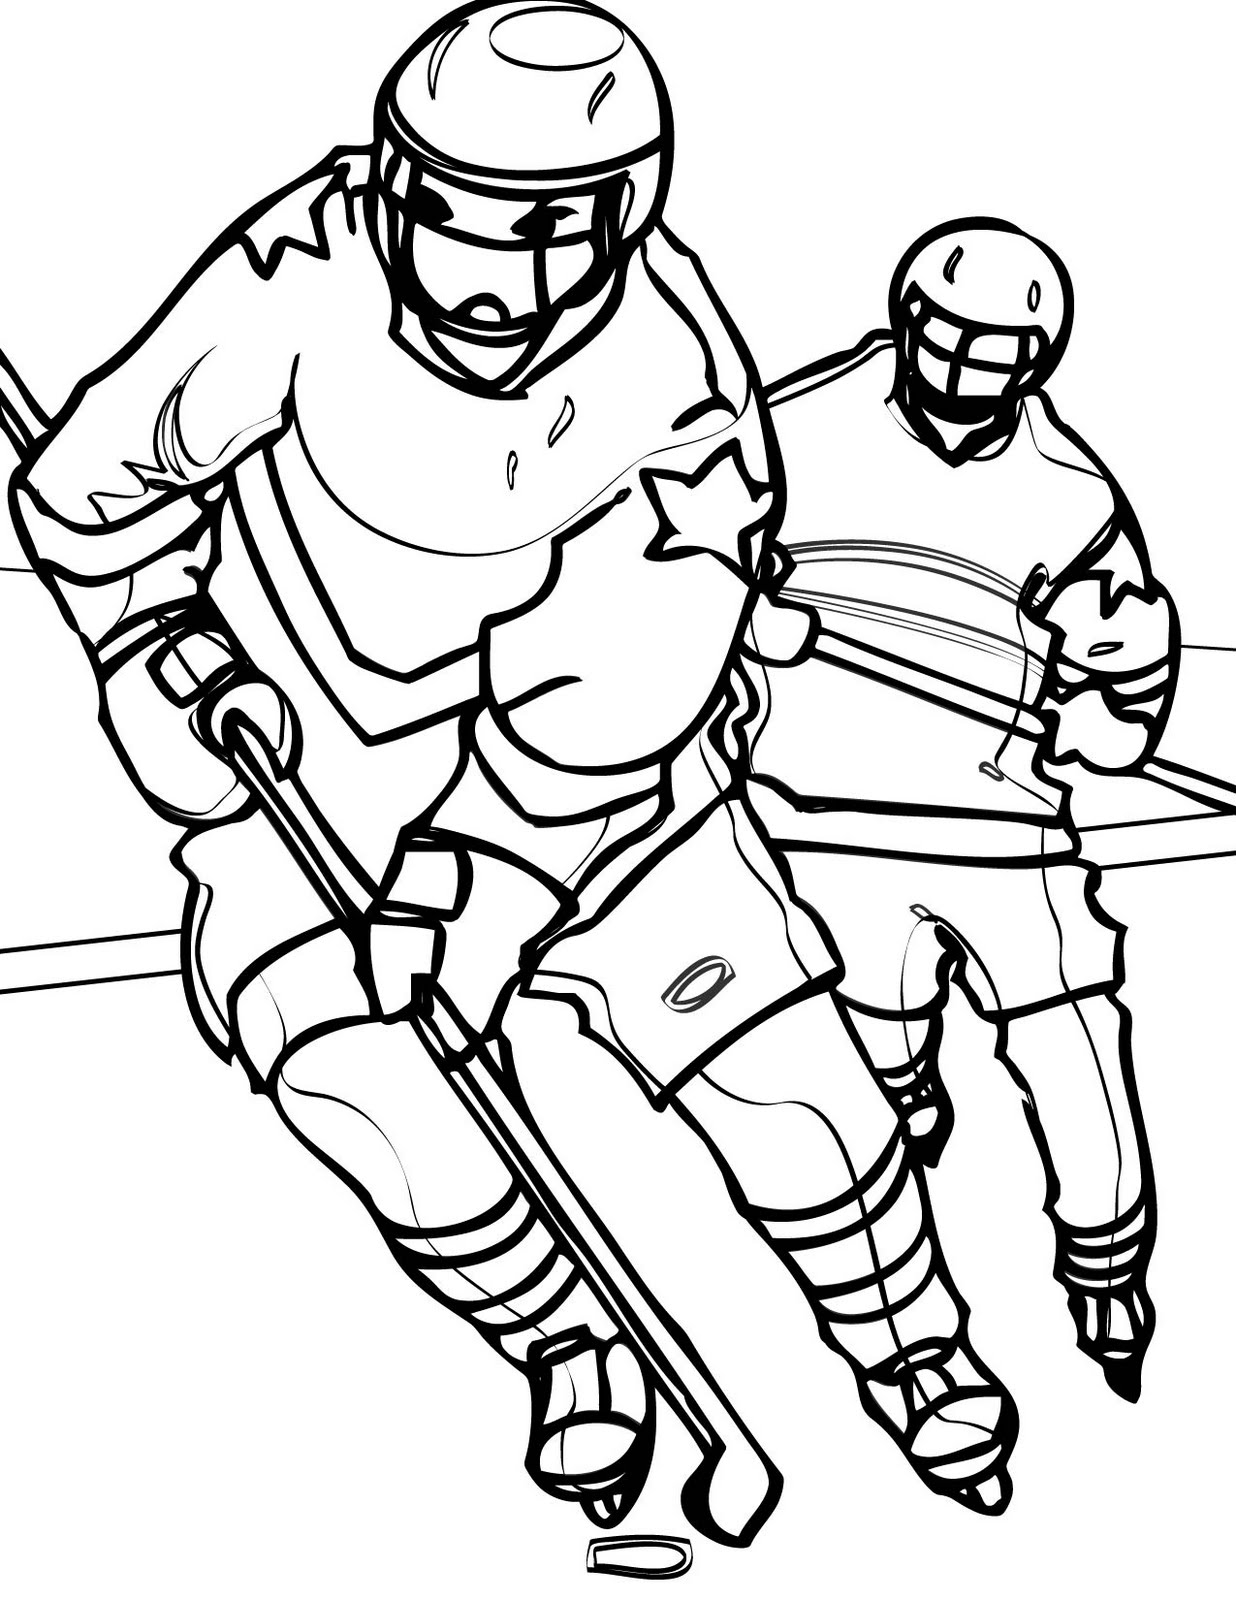 sport pictures to color free printable sports coloring pages for kids color pictures to sport